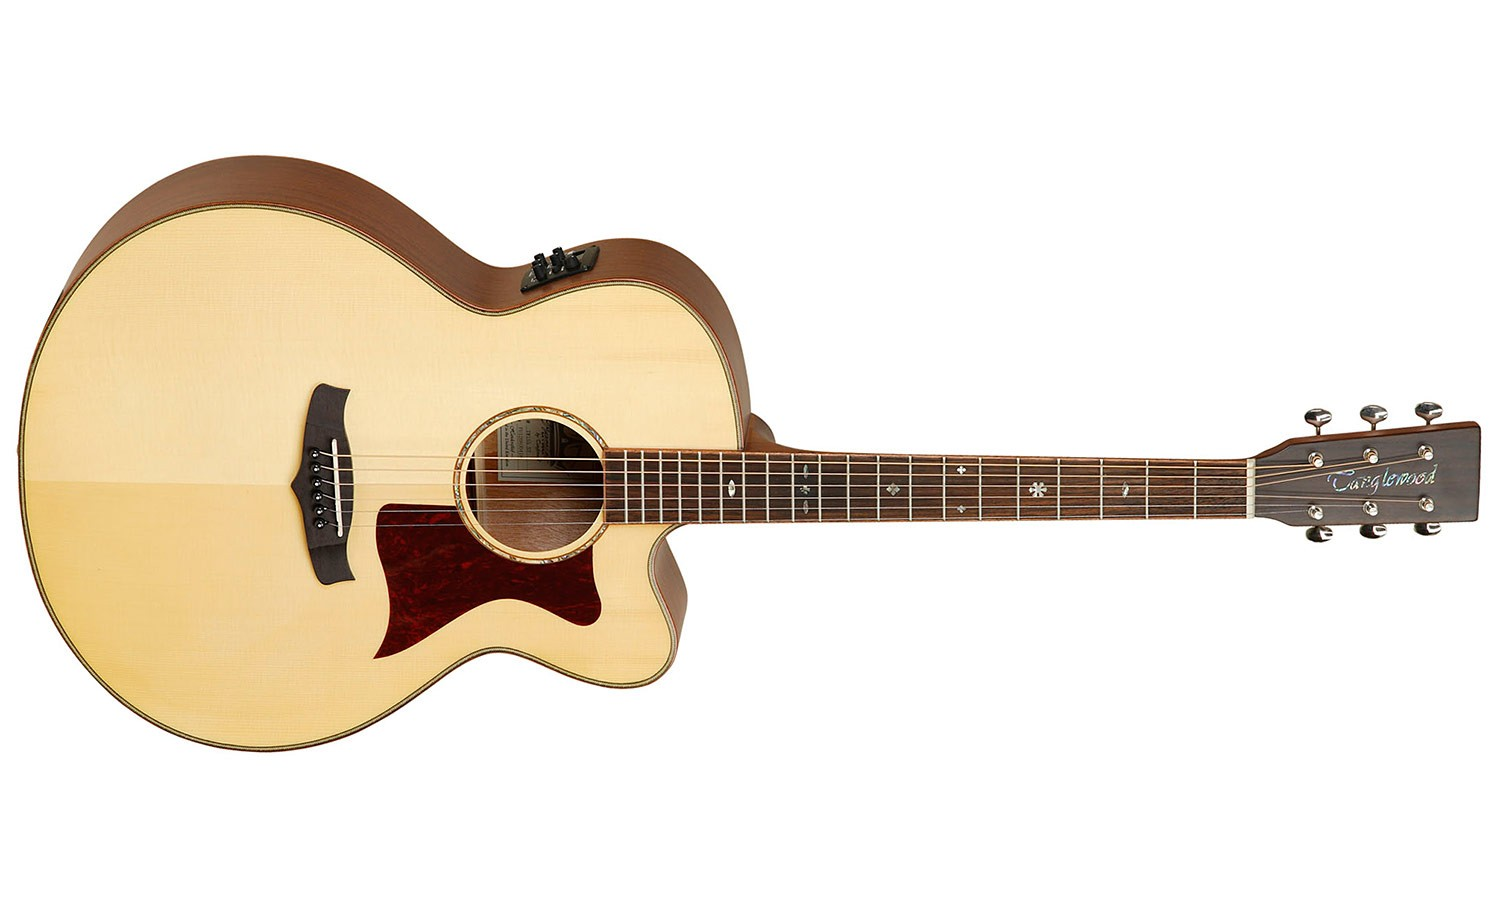 Audiofanzine fr 39 s review tanglewood tw155 st for The tanglewood